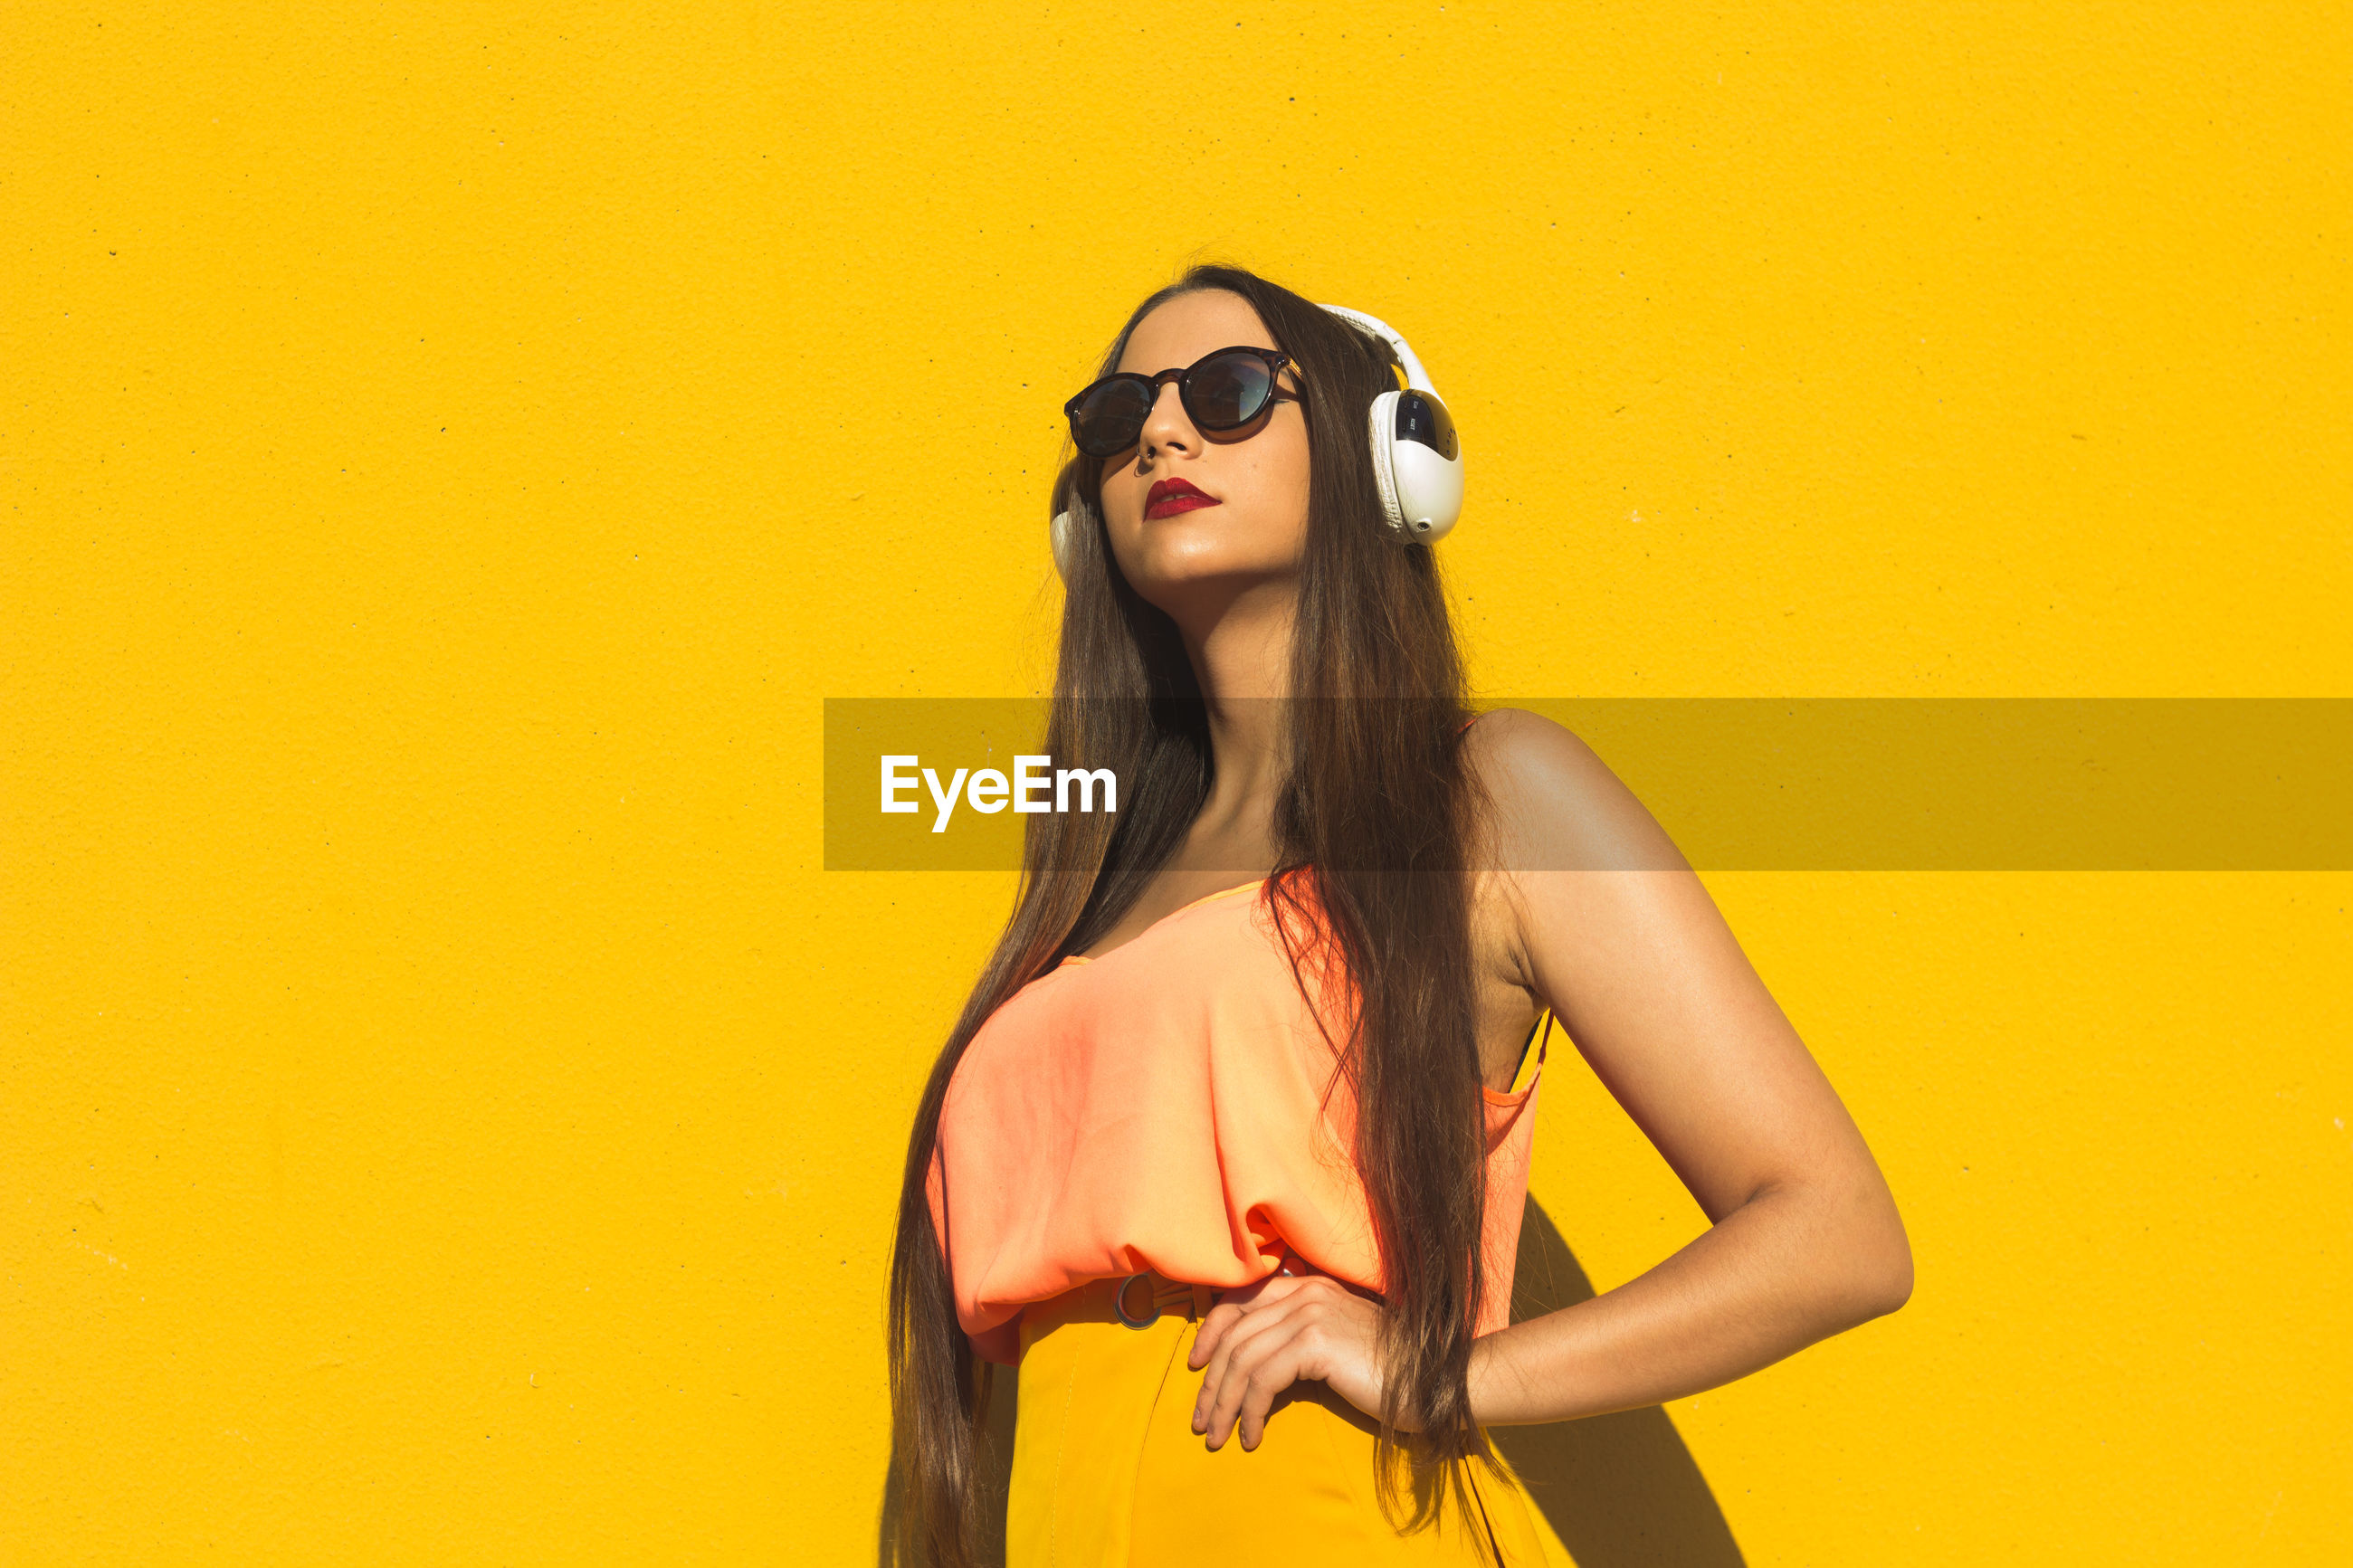 Young woman wearing sunglasses while listening music against yellow background